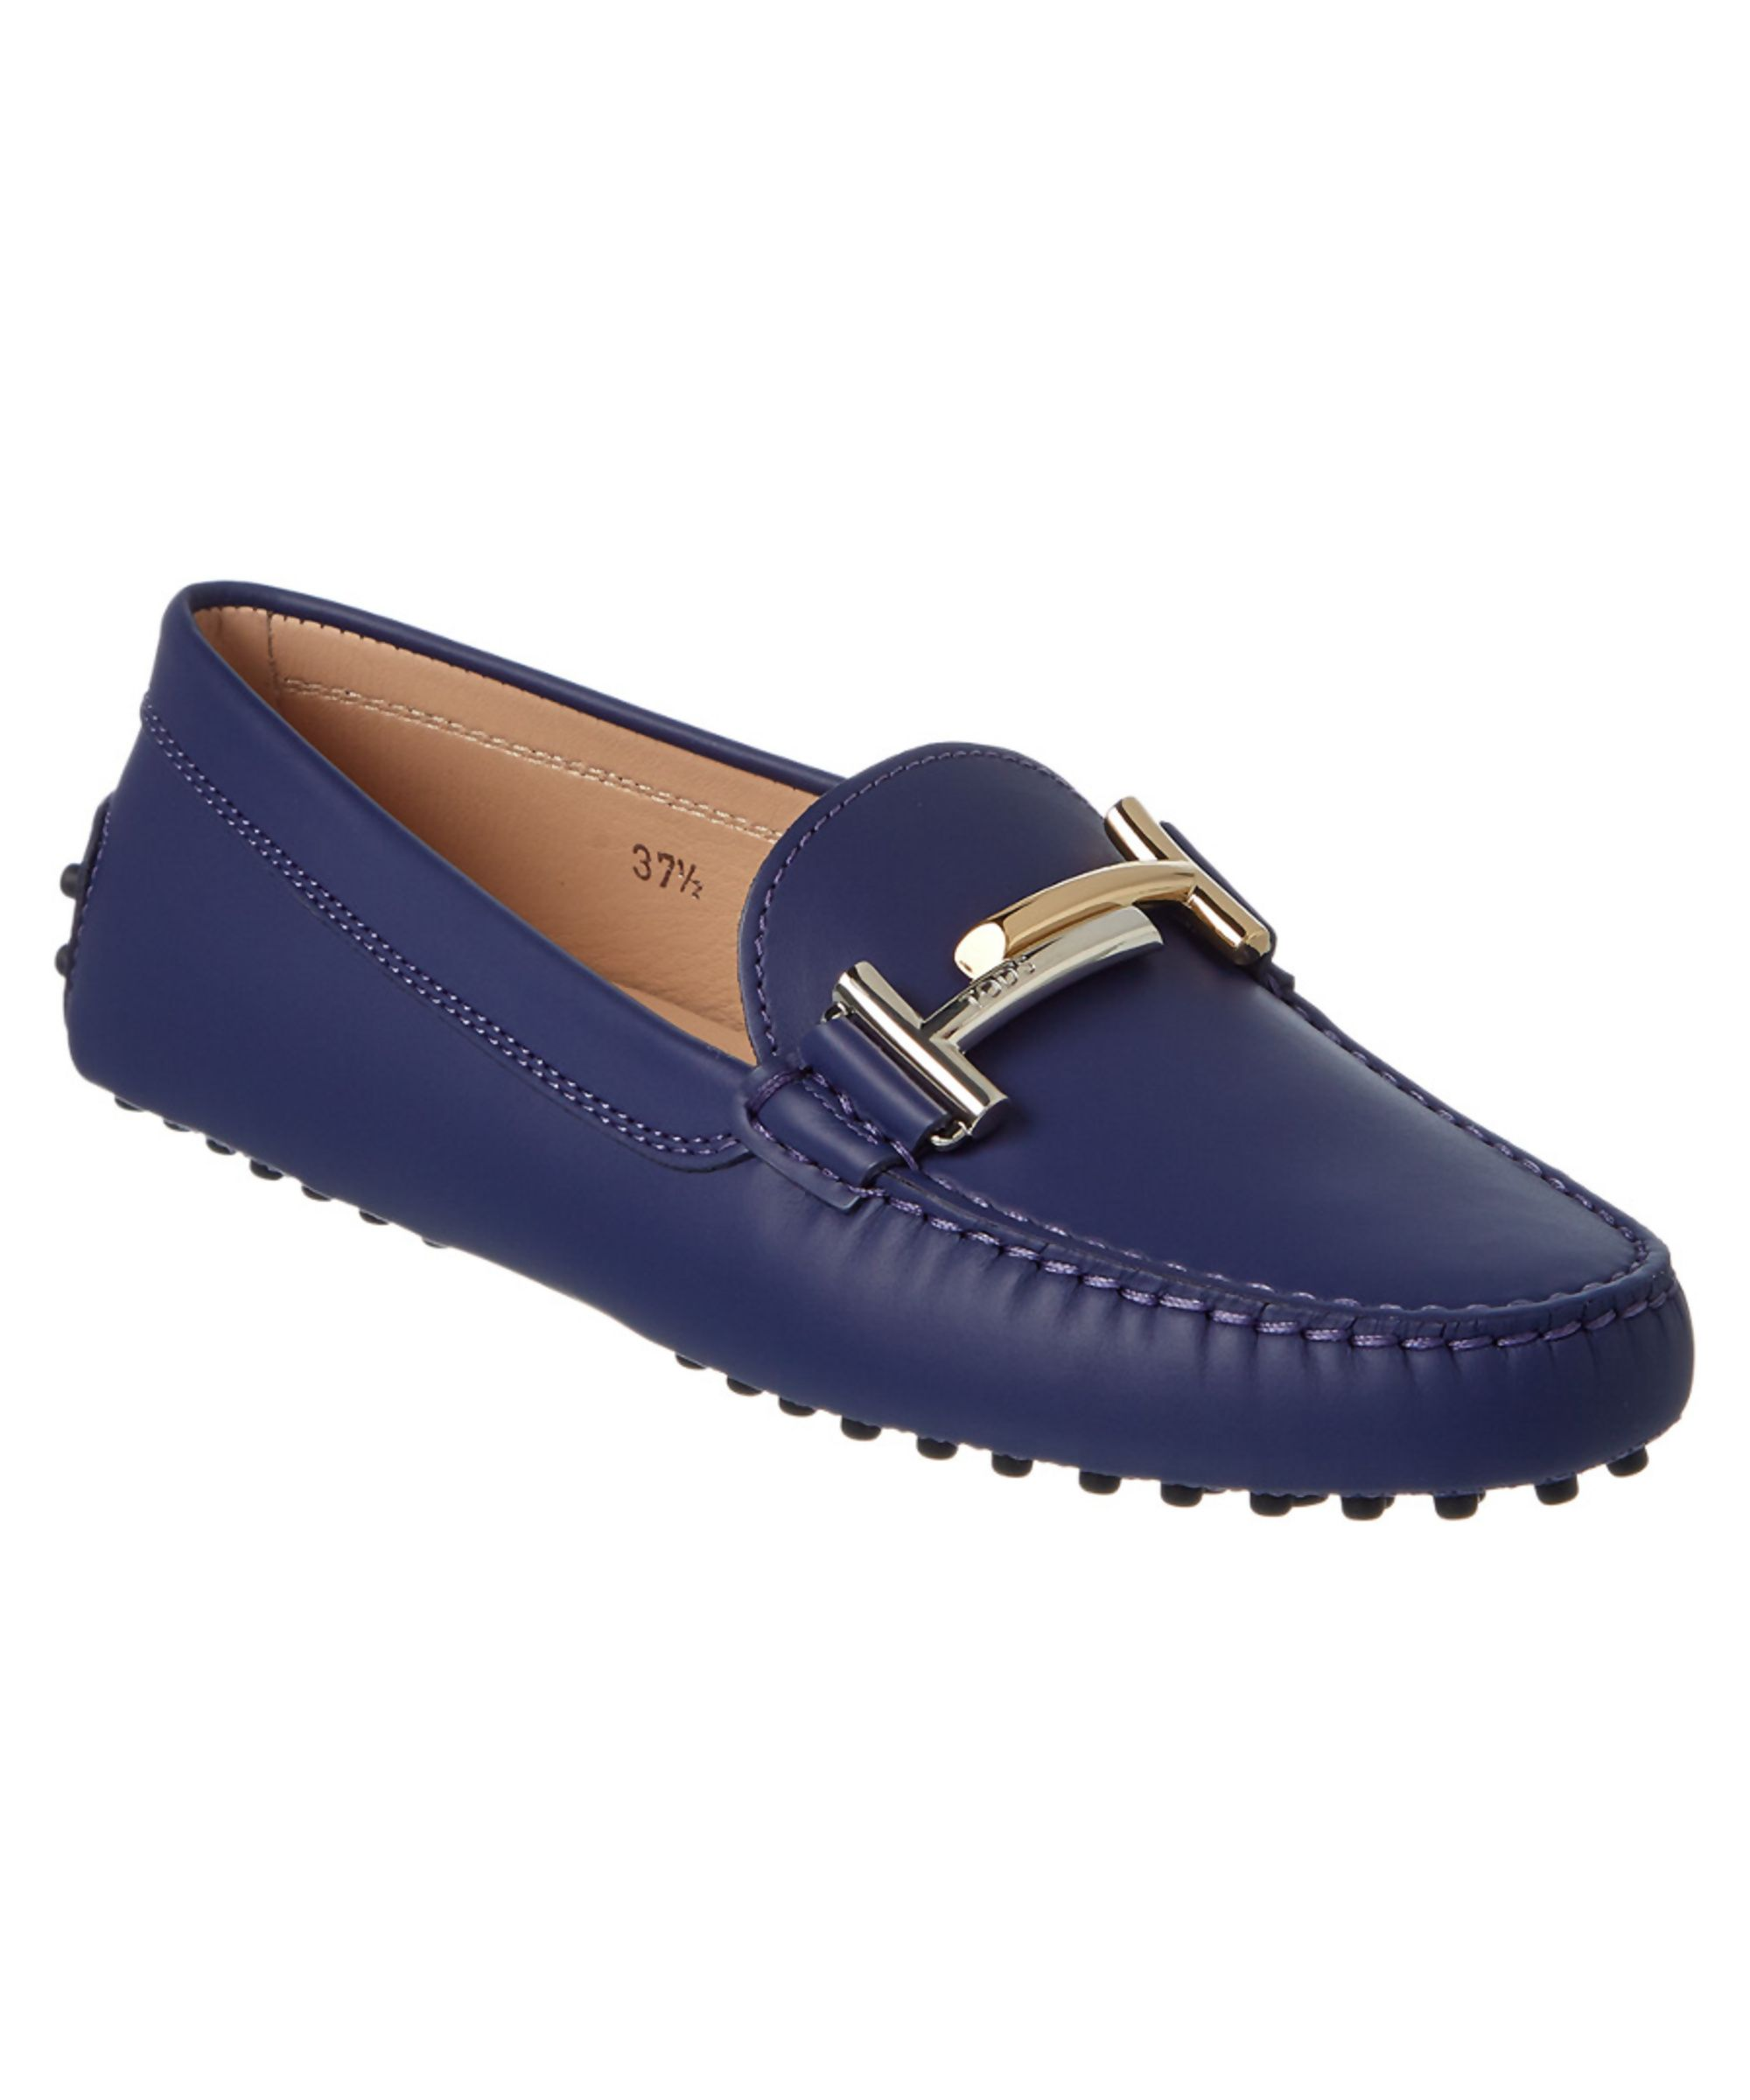 Double T Gommino loafers - Blue Tod's wdVSh5d250